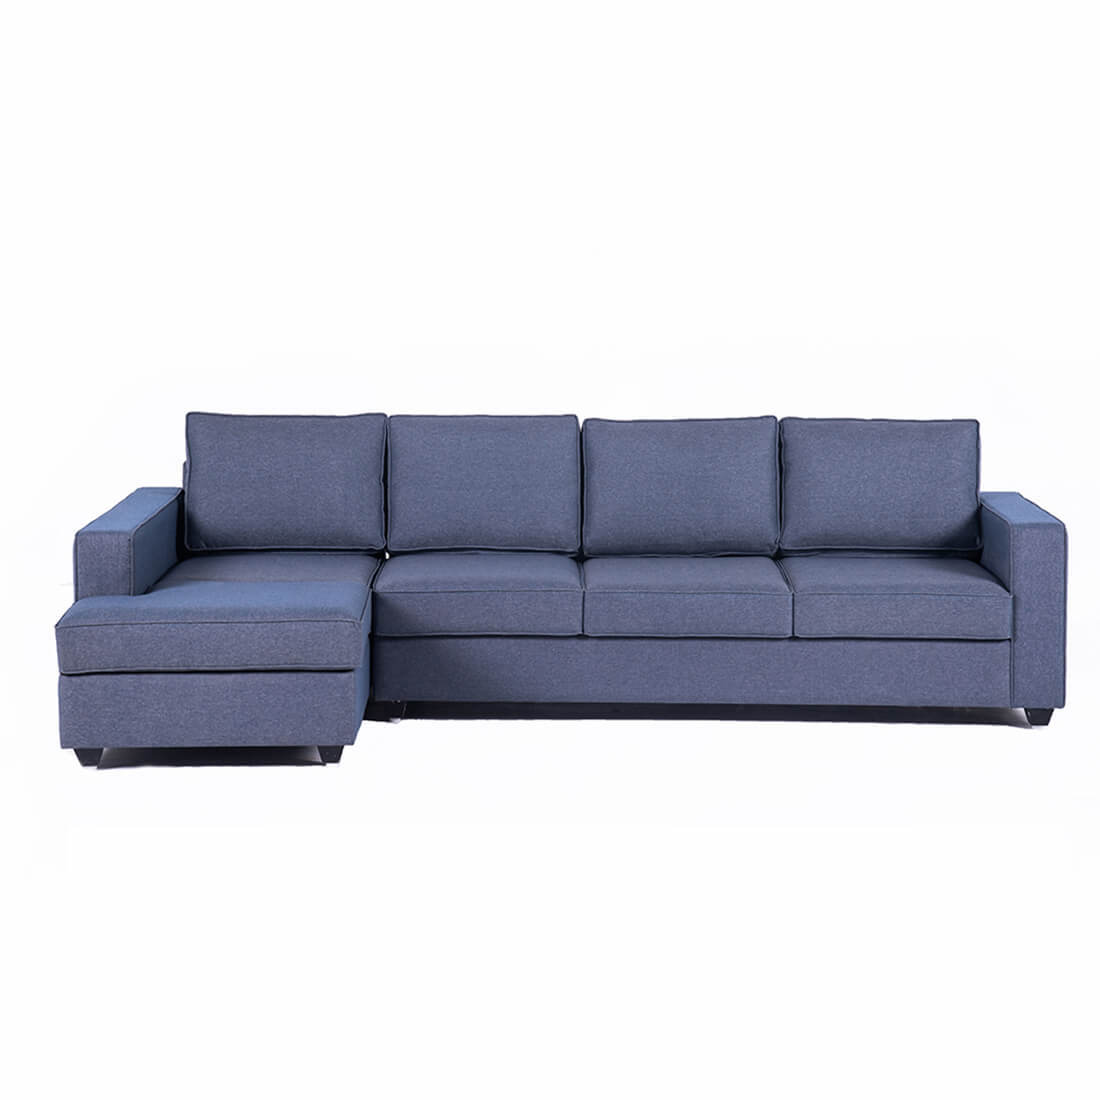 Wakefit Napper L Shape Sofa Set (3 Seater + Left Aligned Chaise)